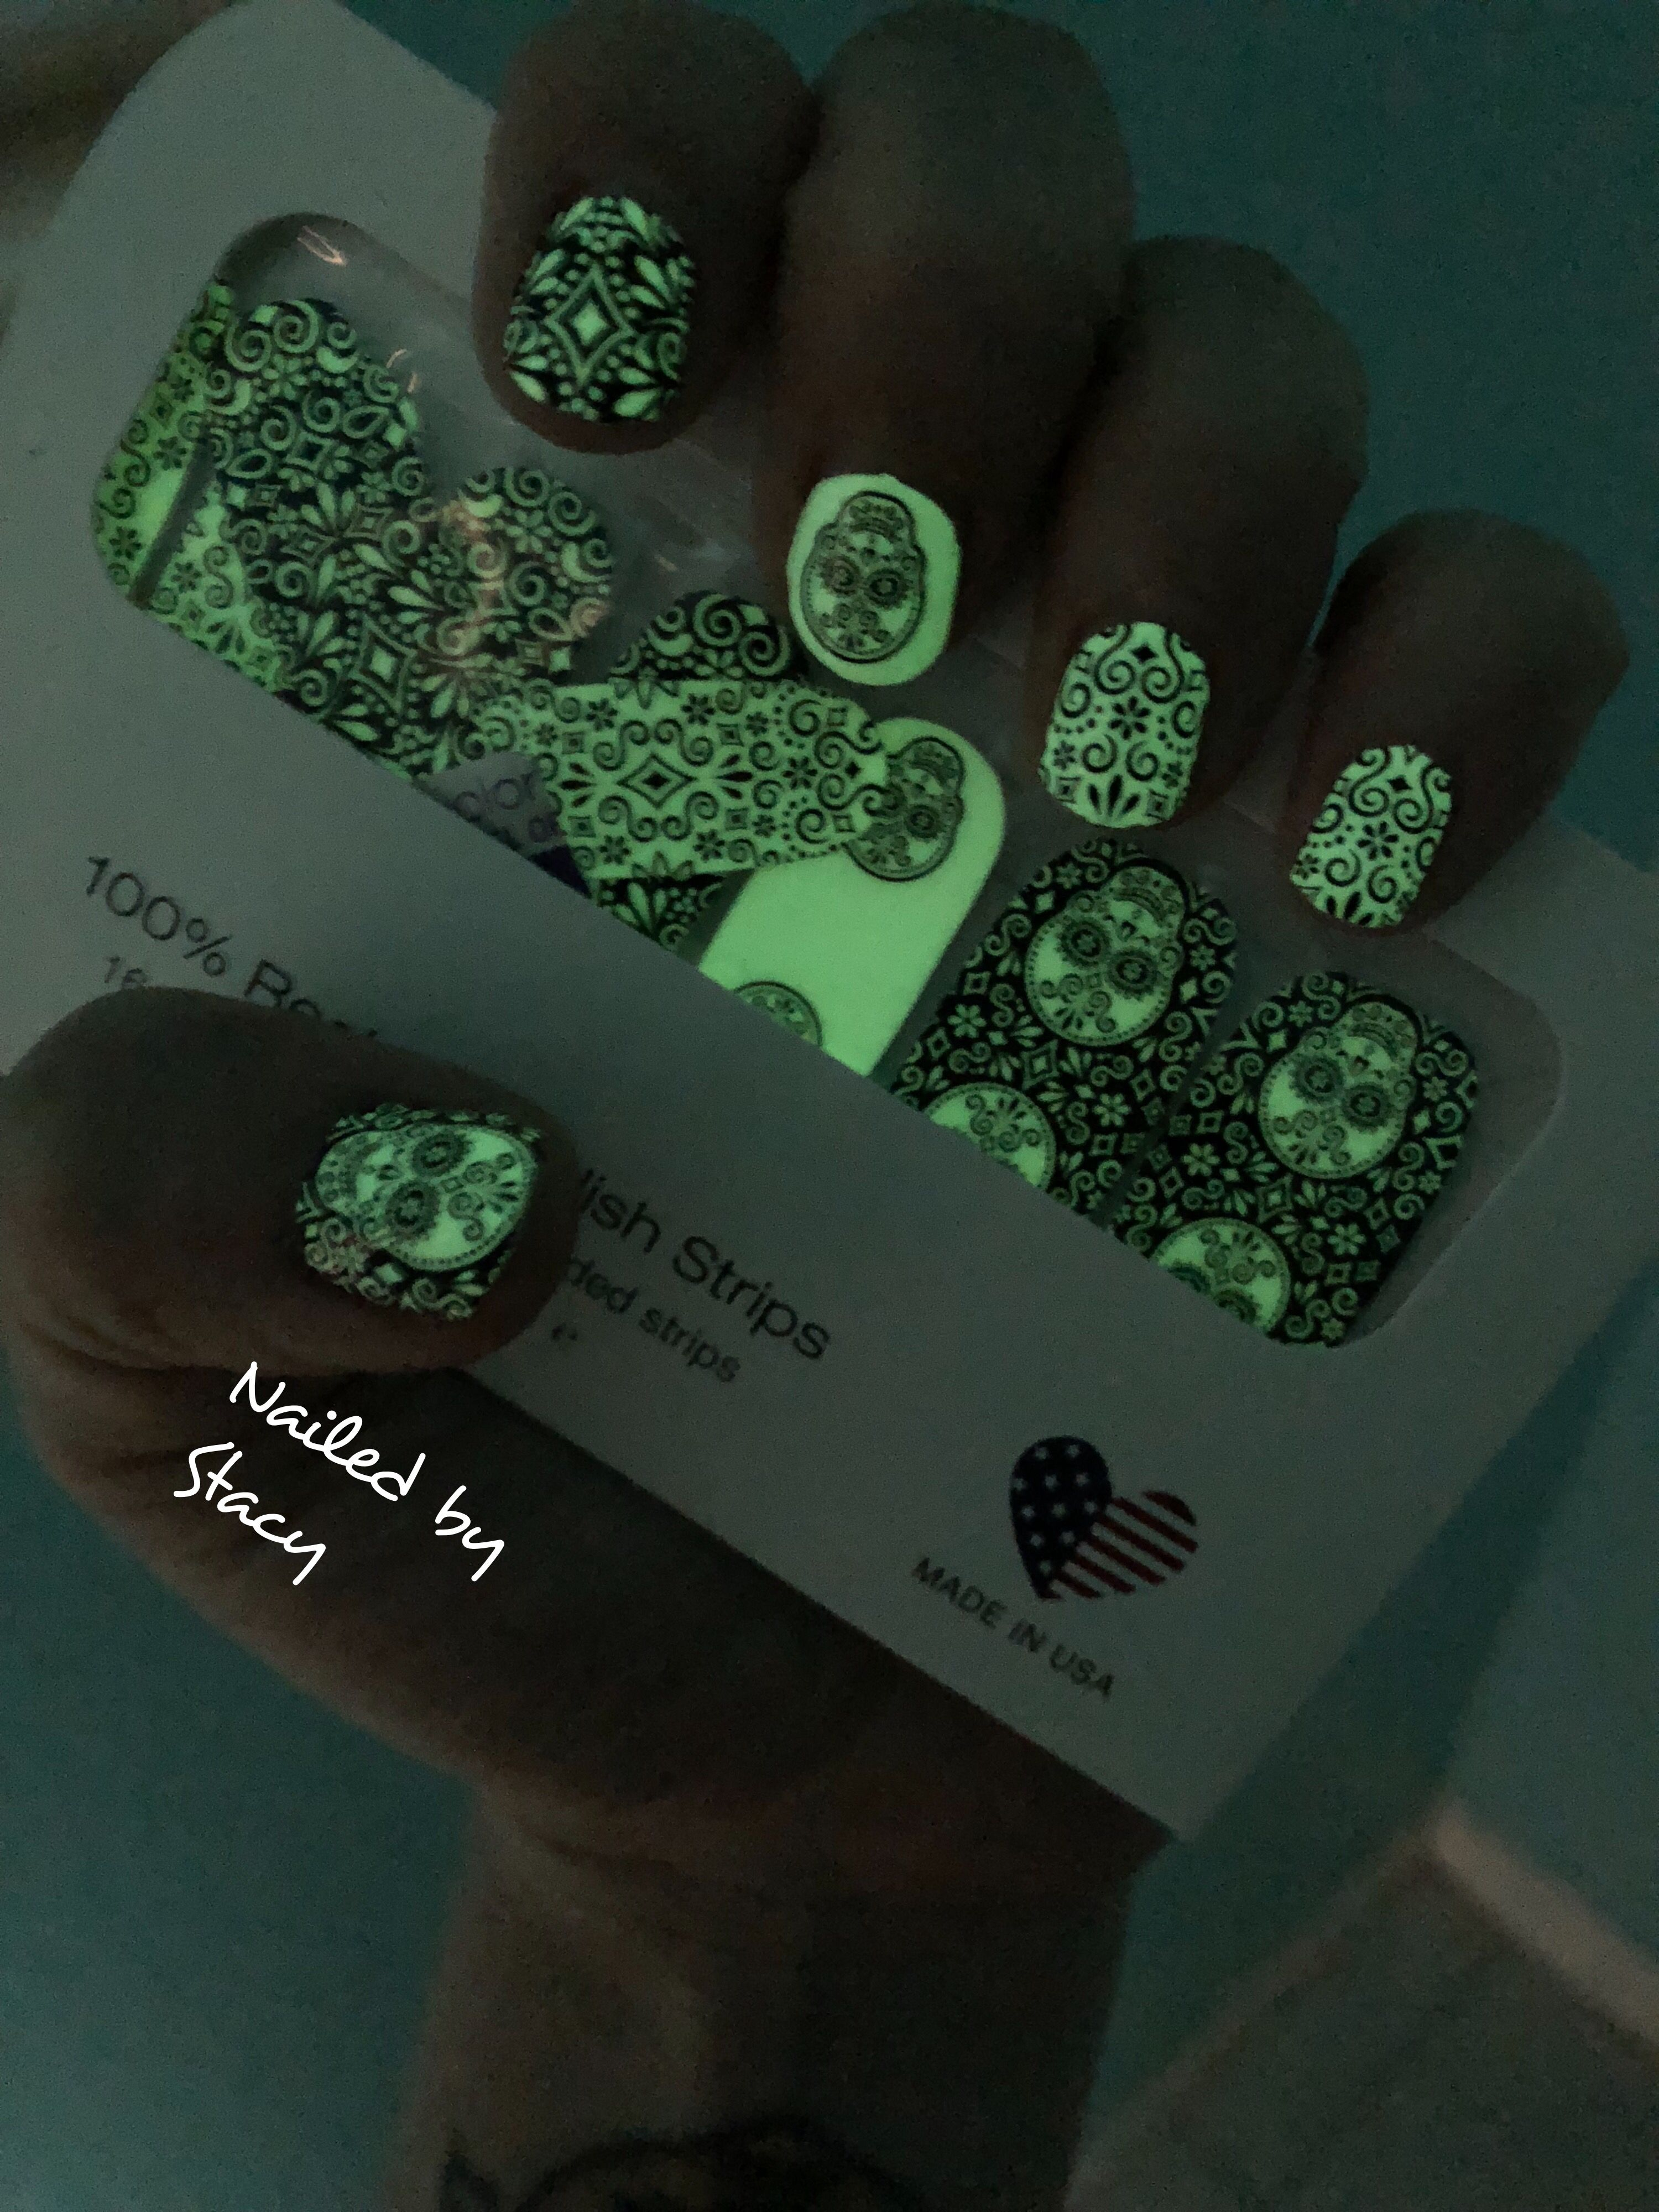 Abra-Cadaver glow in the dark | Stripped nails, Color ...